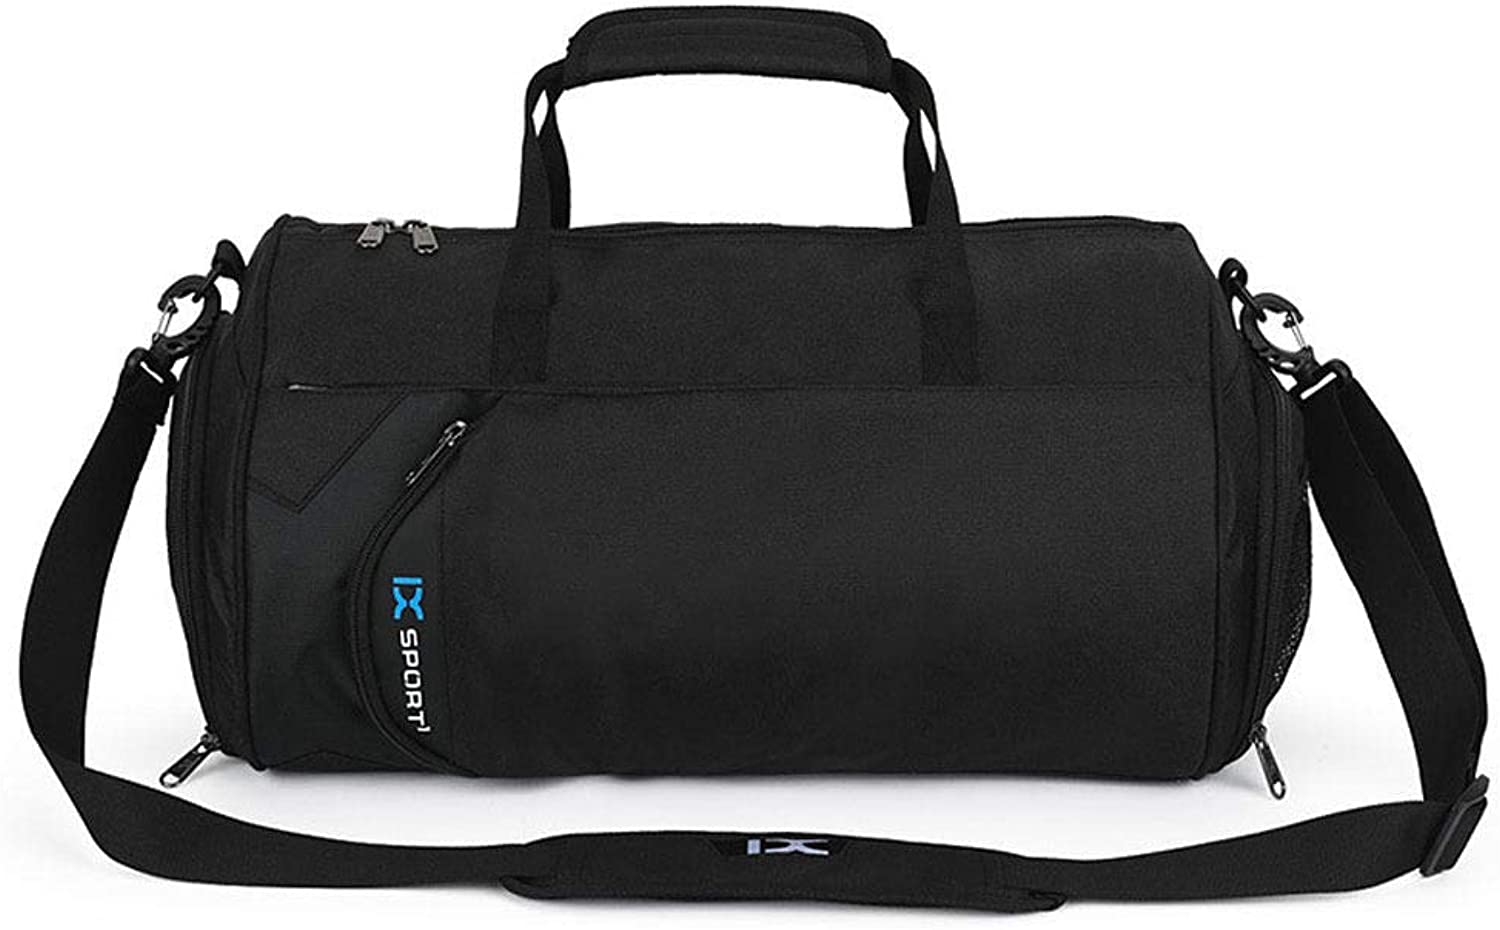 97857bd36b472e Gym Bag, Sport Gym Duffle Bag Training Handbag Yoga Bag Travel Overnight  Weekend Shoulder Tote